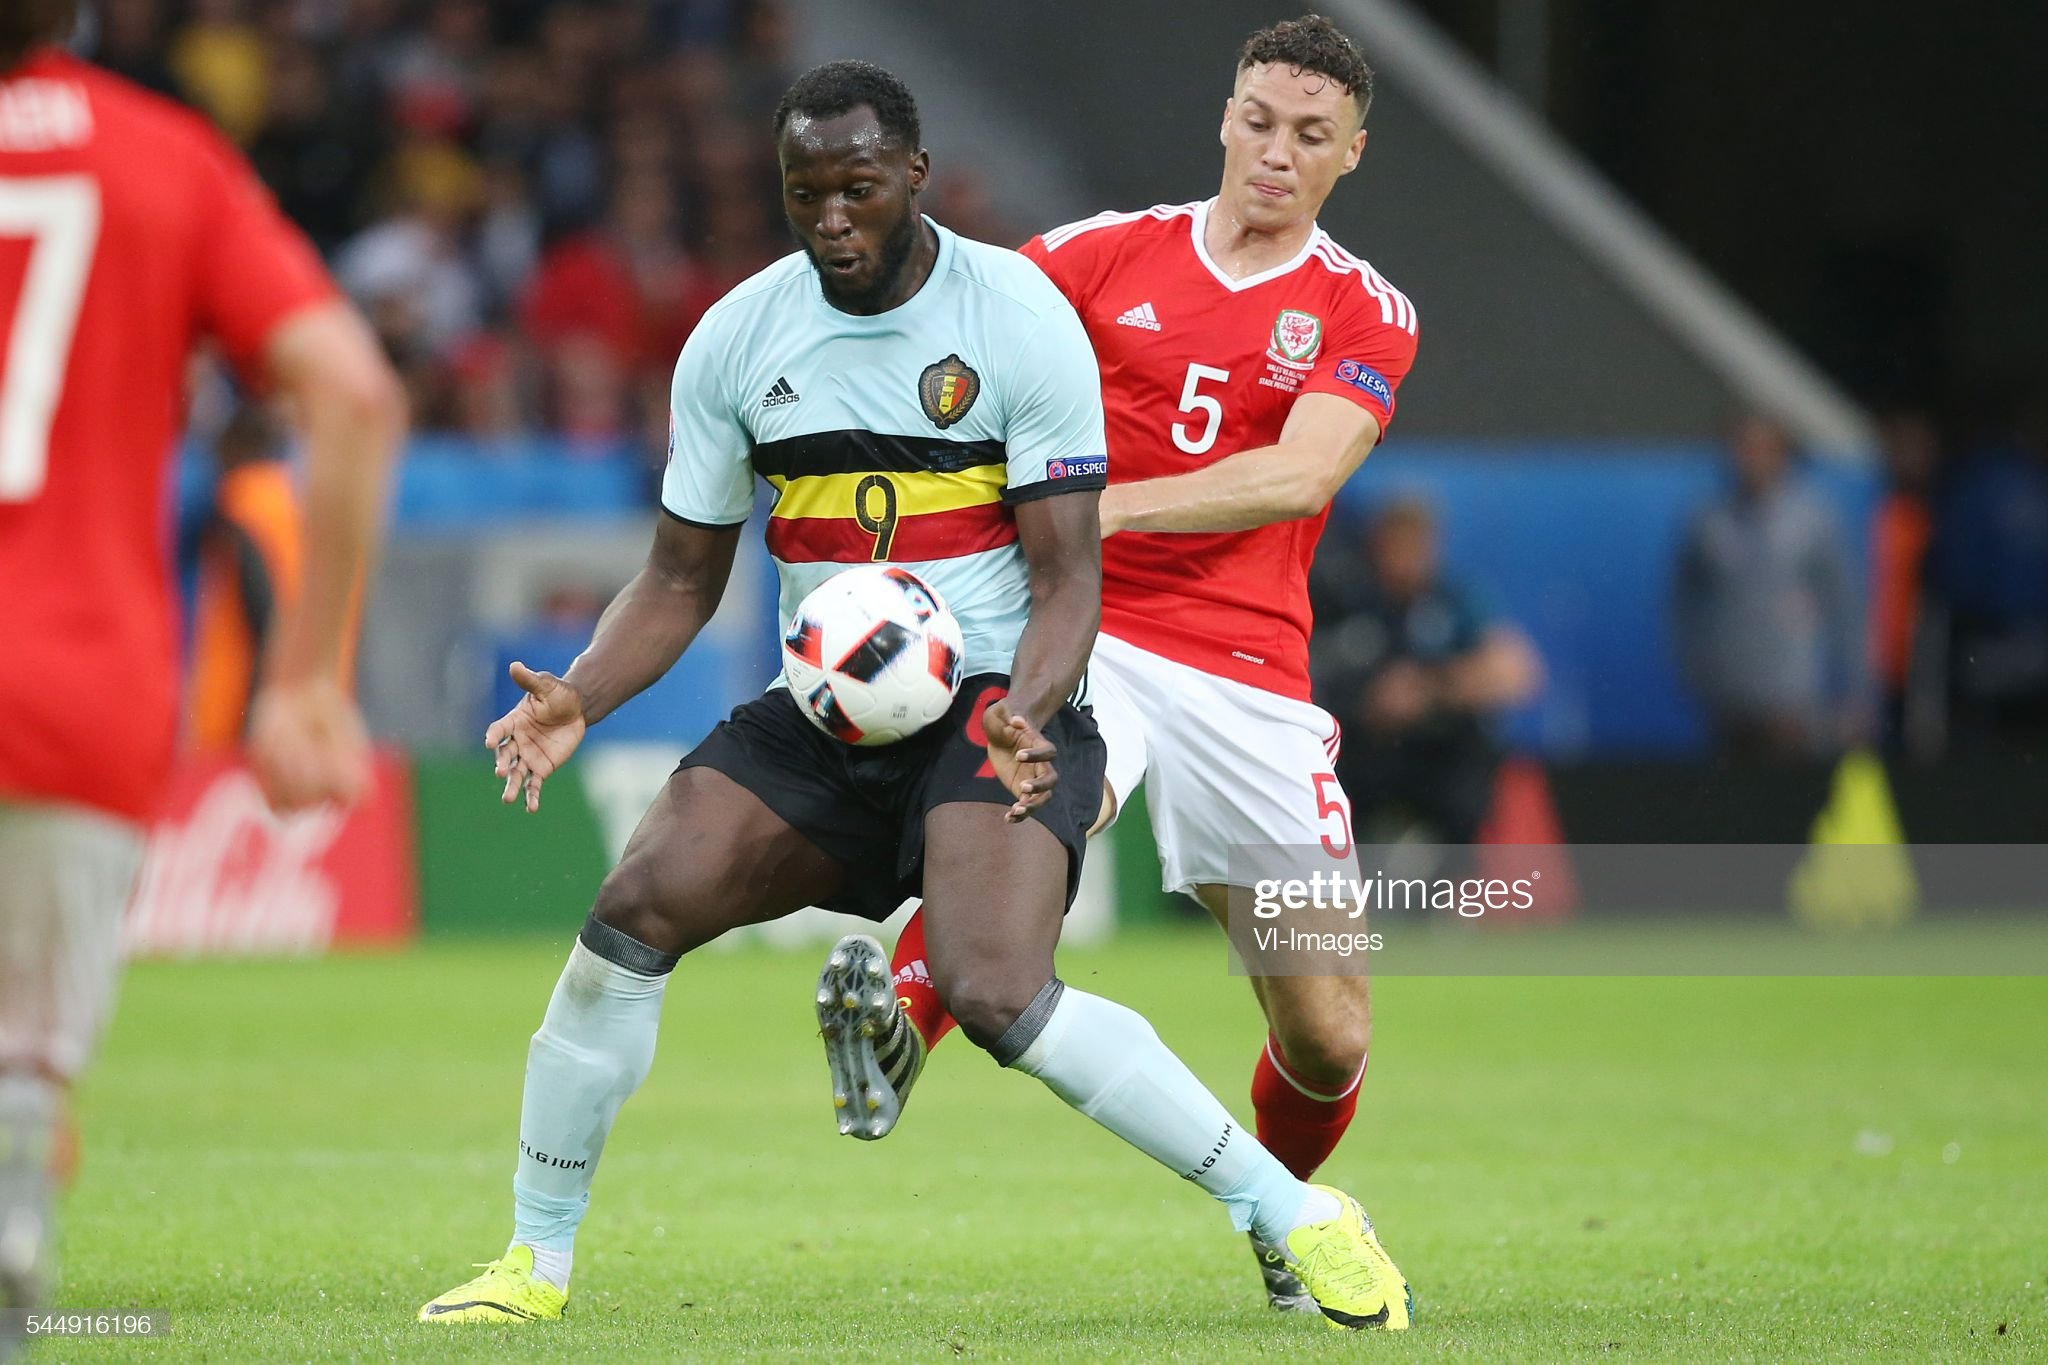 Belgium vs Wales Preview, prediction and odds